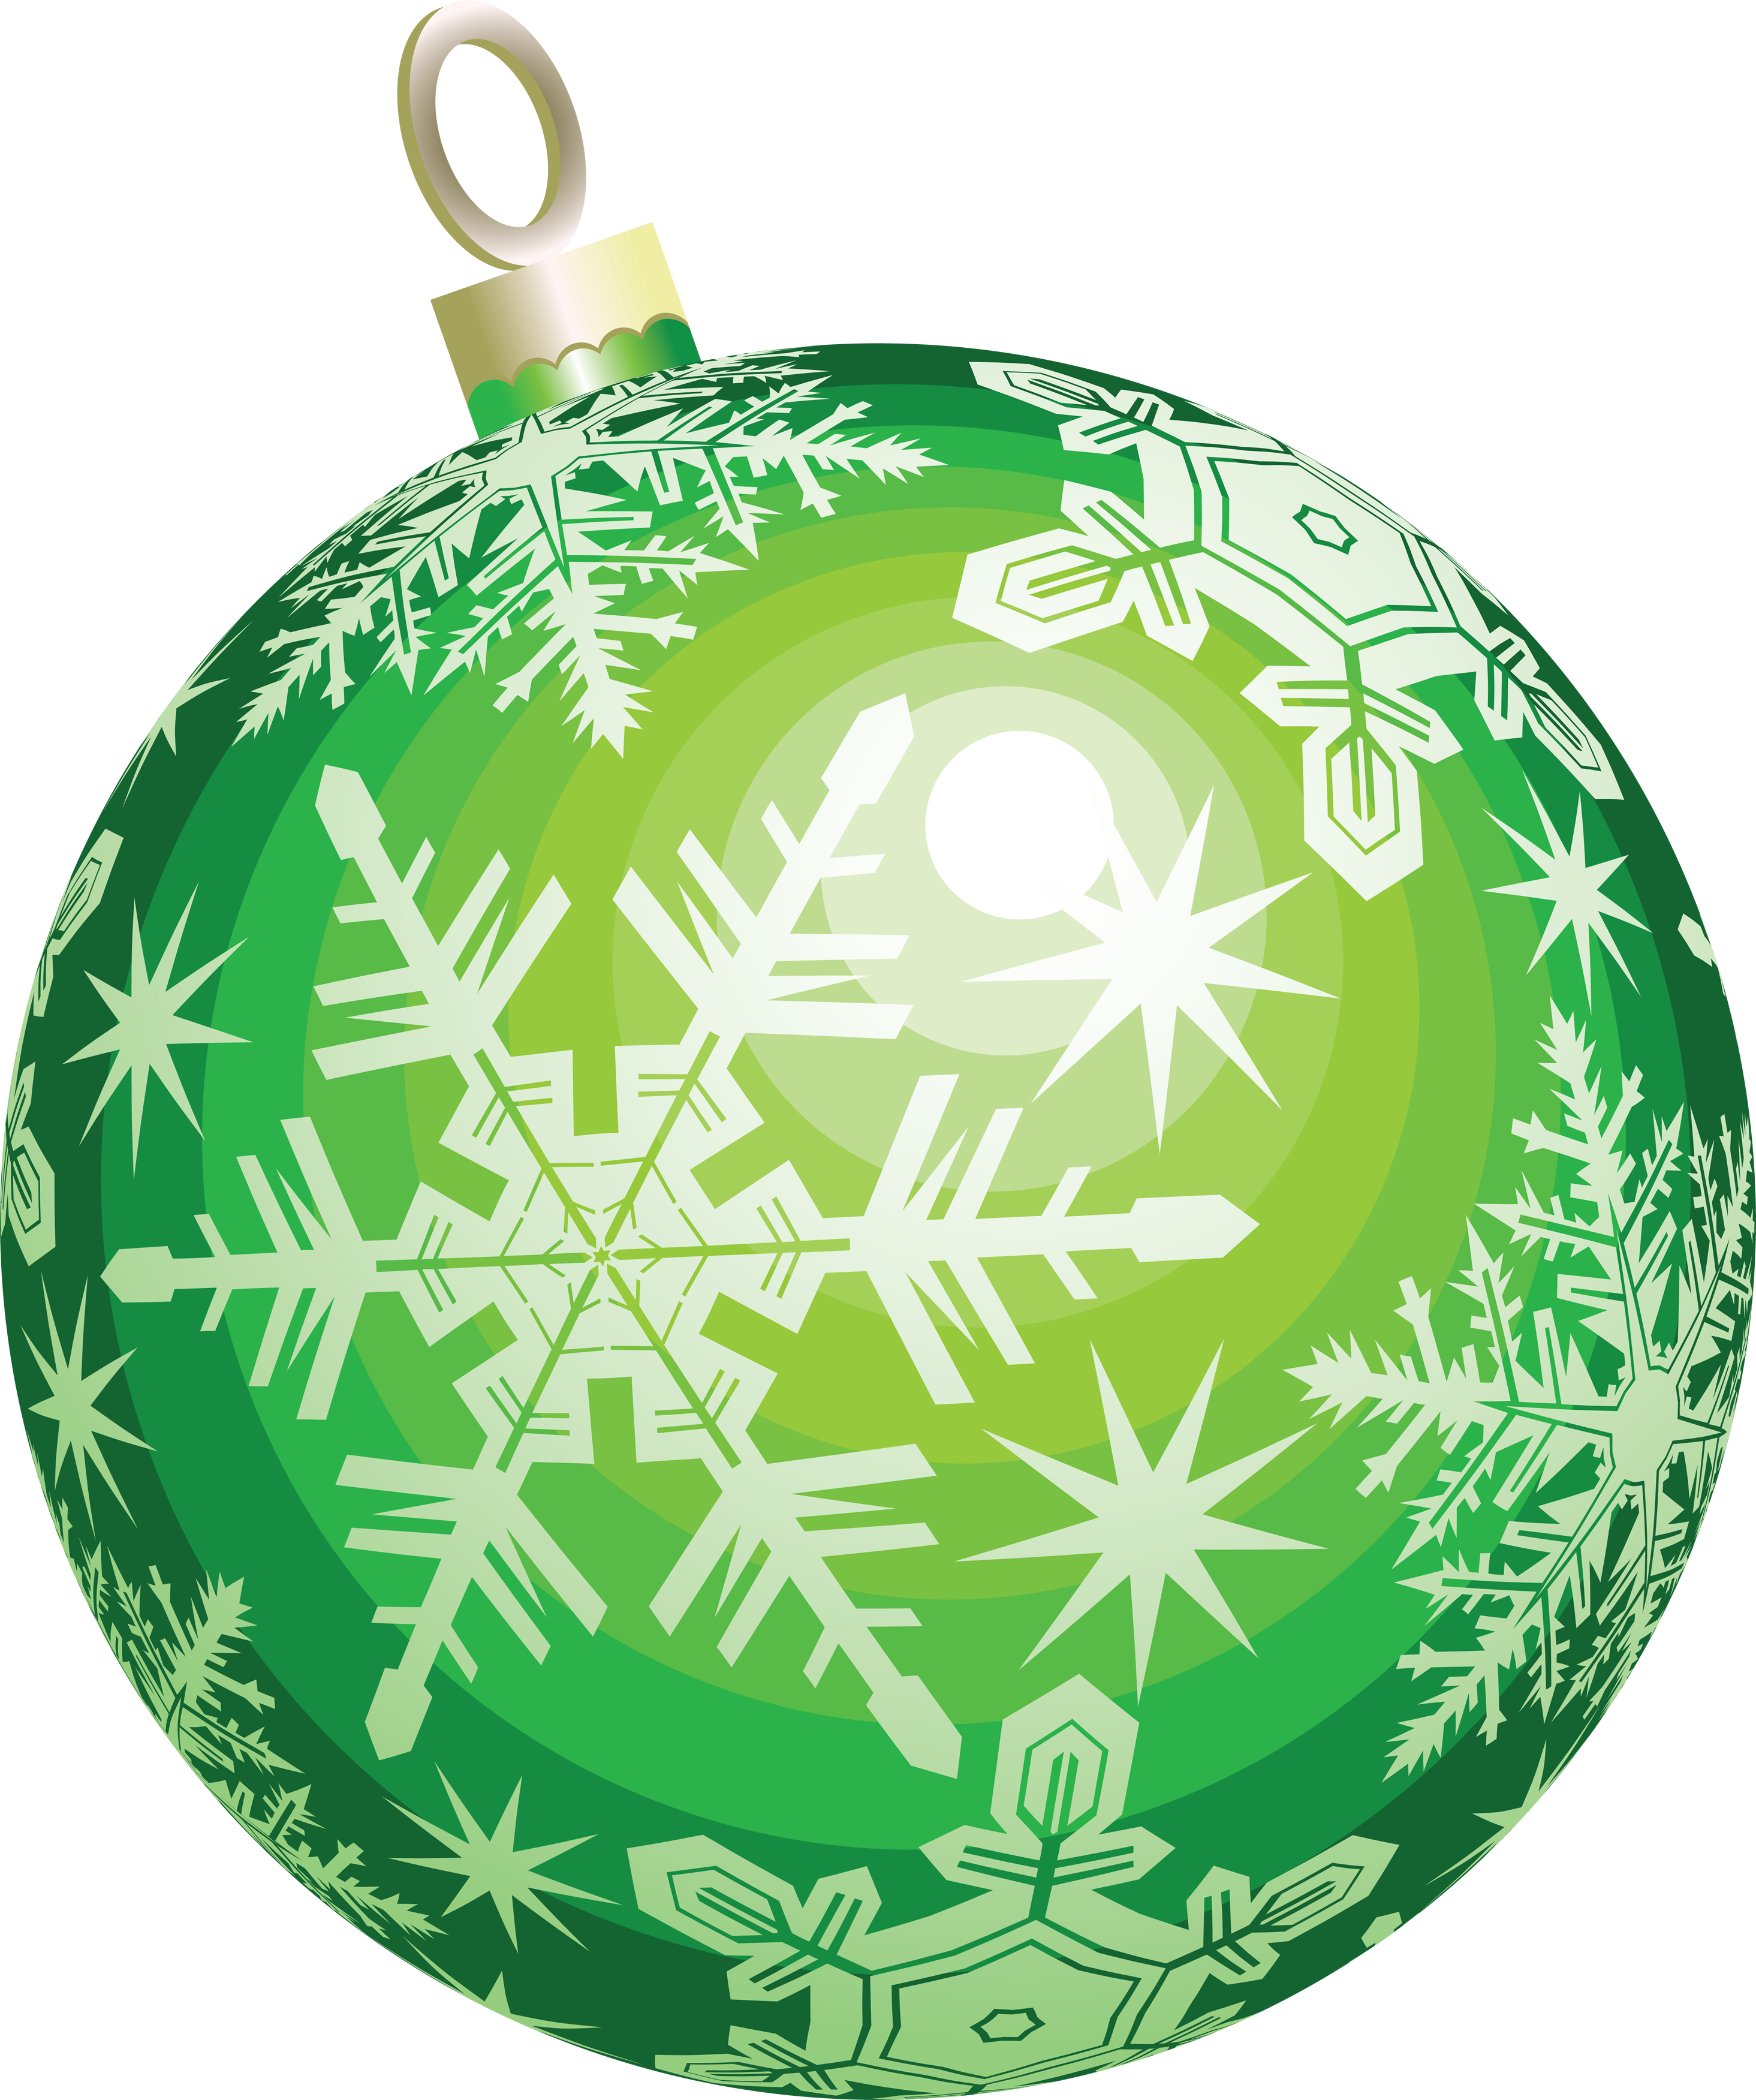 Green christmas ornaments clipart clip art library download Christmas Ornament PNG Transparent Free Images | PNG Only clip art library download